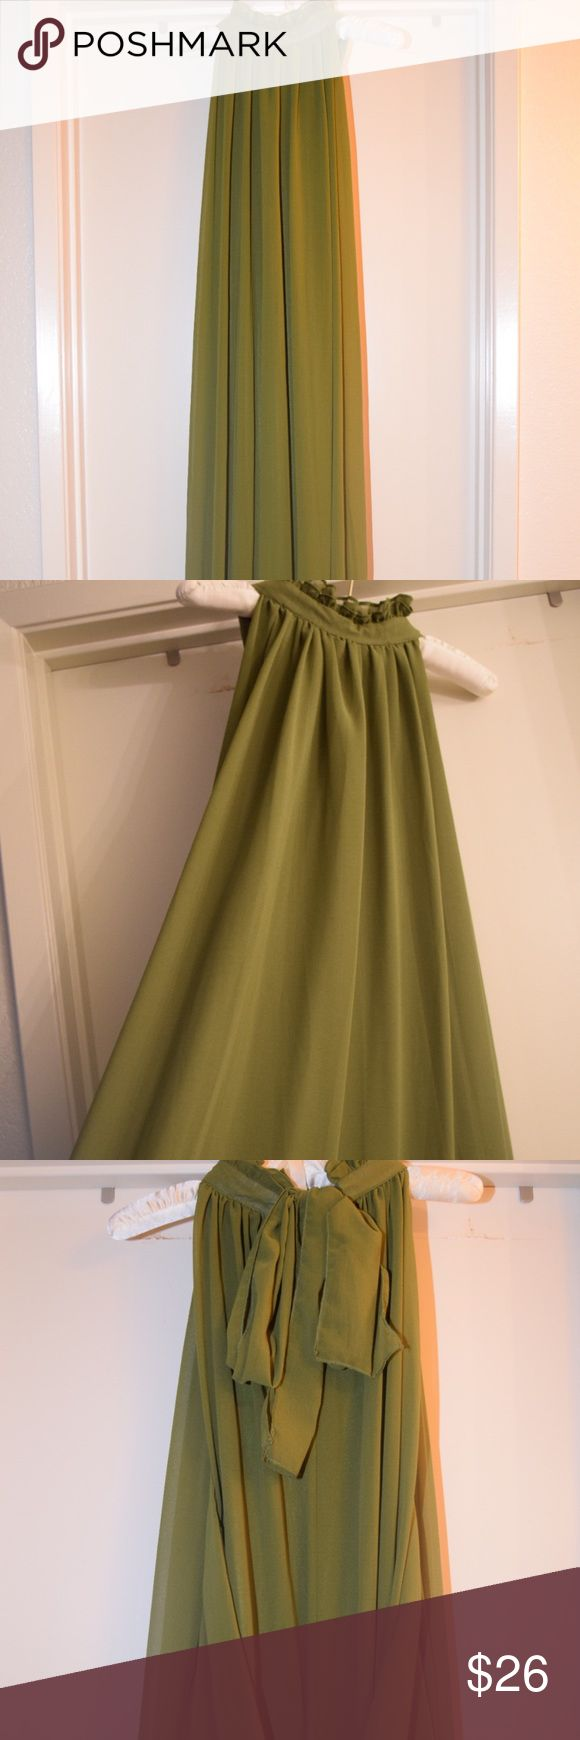 Olive green maternity dress Olive green. Long and flowy. Chiffon with cotton lining. Ties from the neck and has a tie for the waist line. Looks super cute worn Dresses Maxi